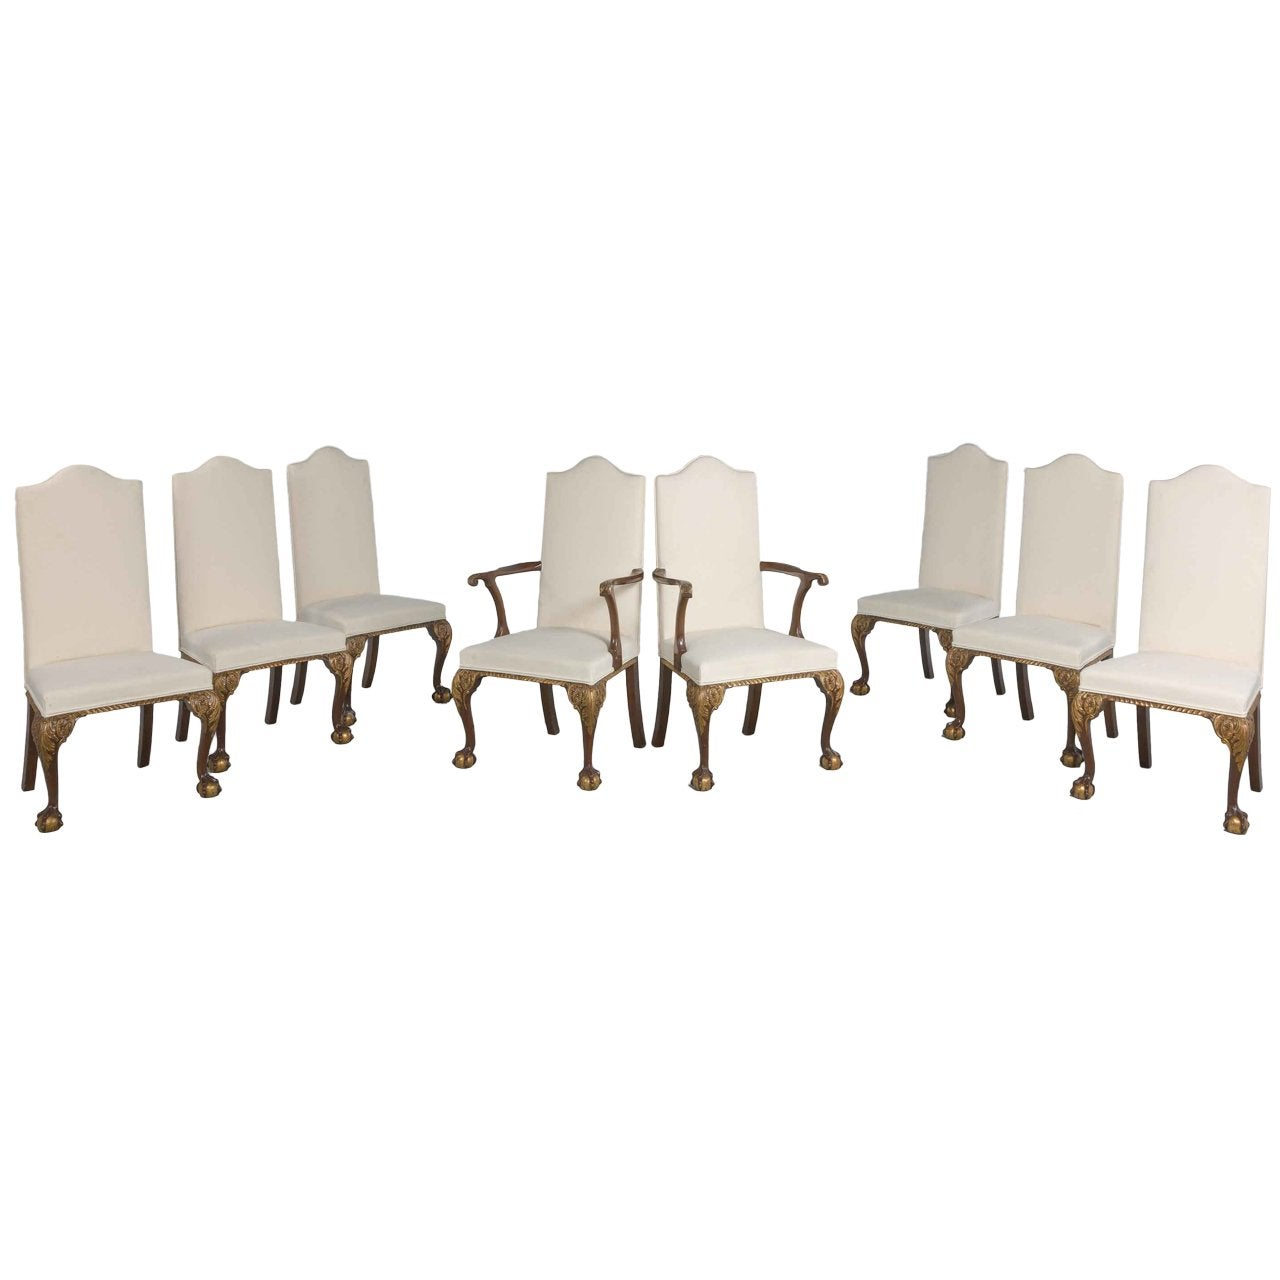 Set of Eight Walnut and Parcel-Gilt Chairs